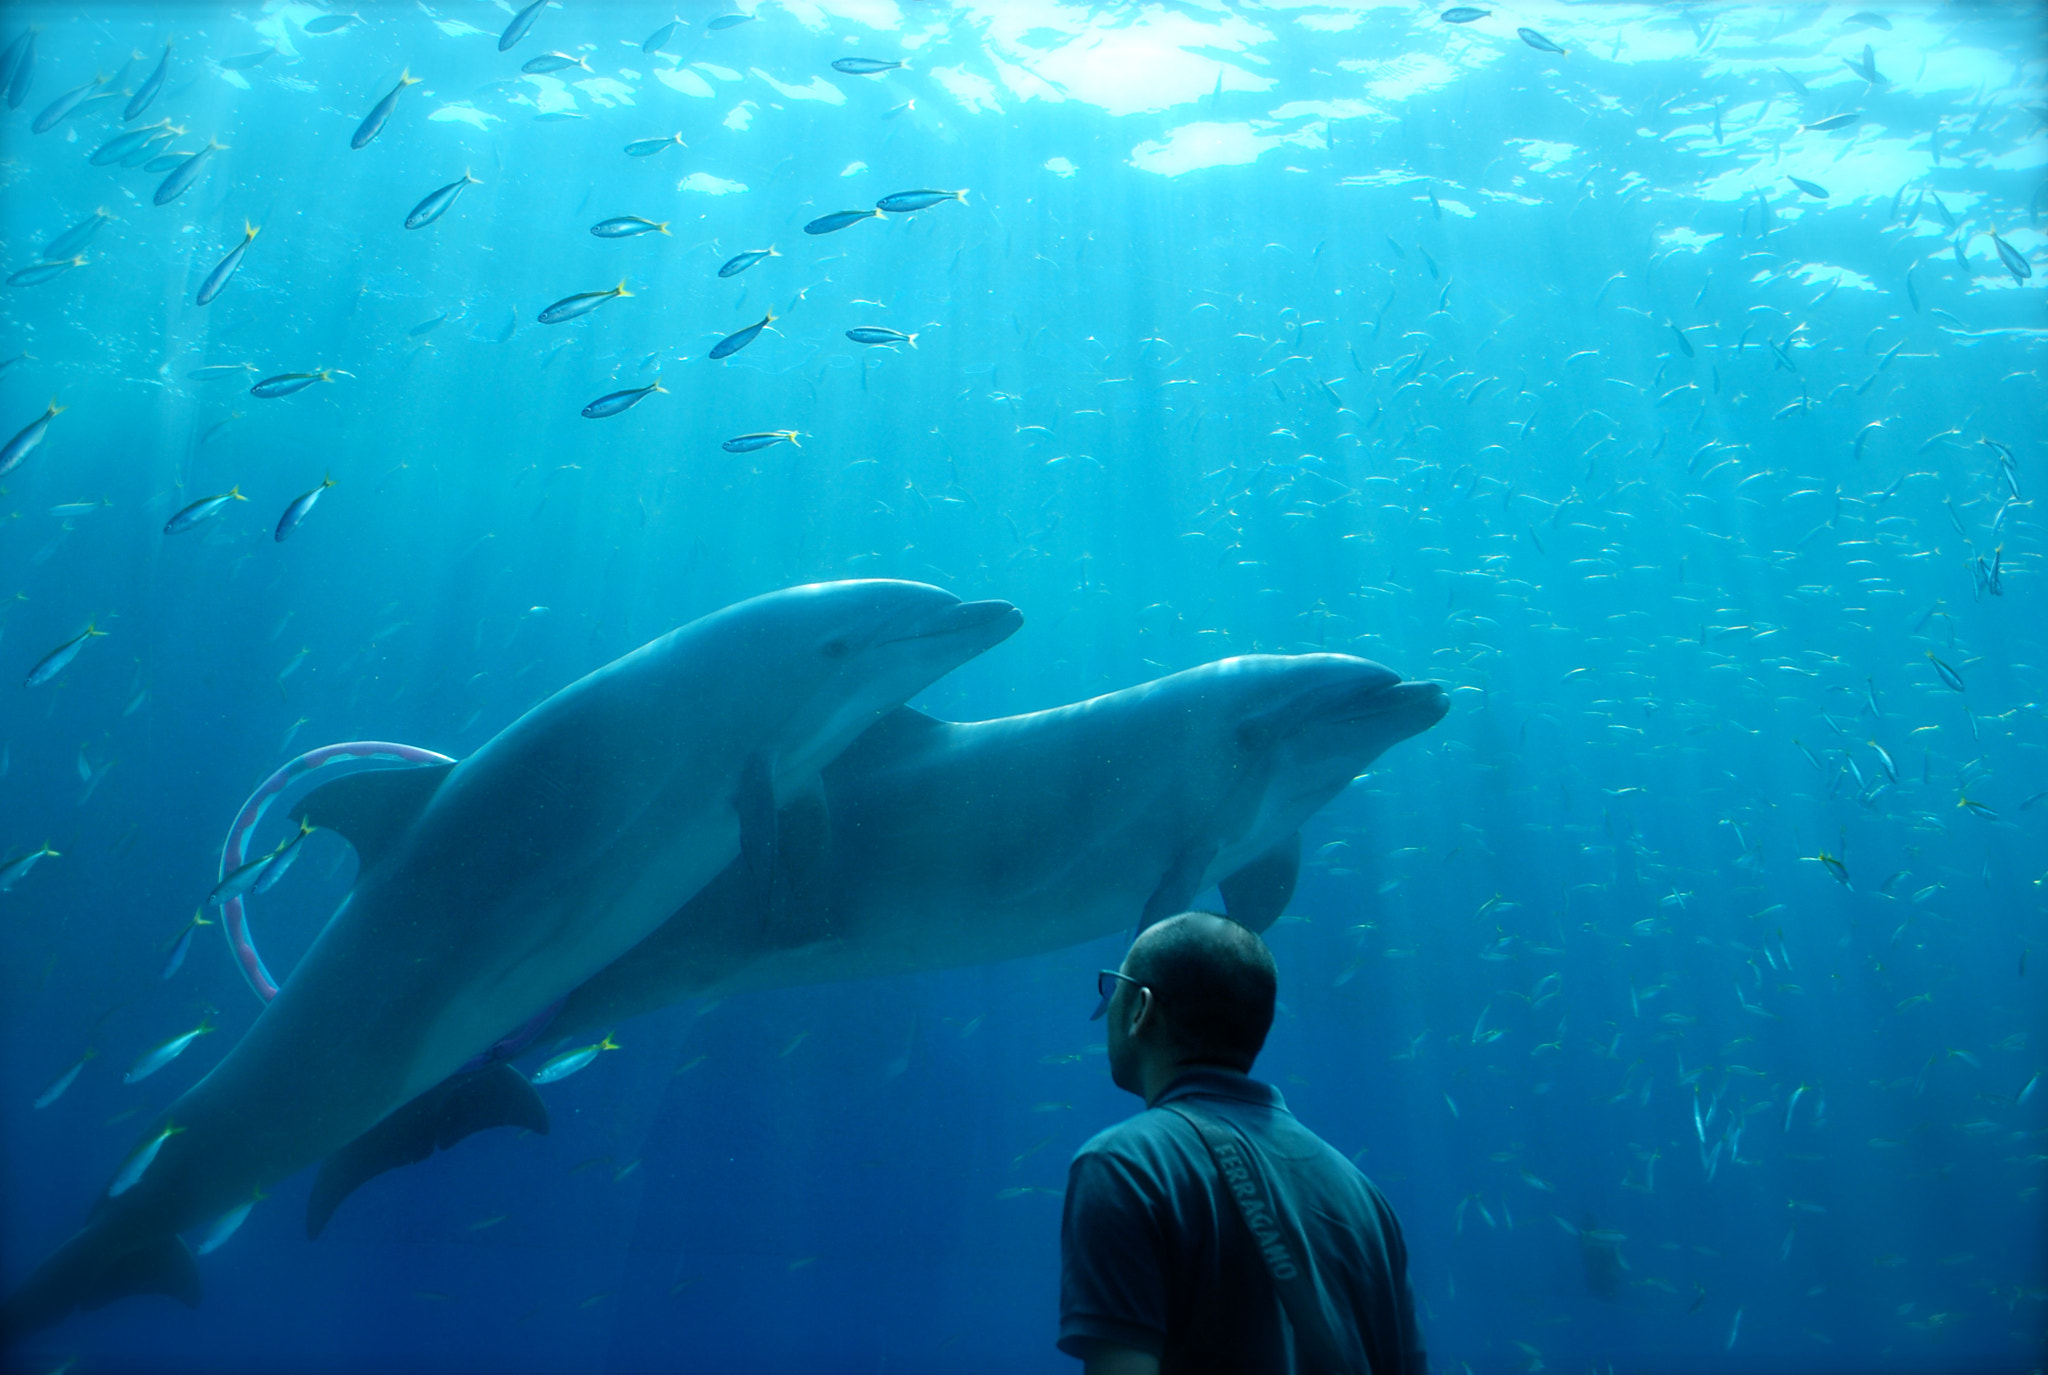 Photograph Dolphins and a man by kanae iyo on 500px